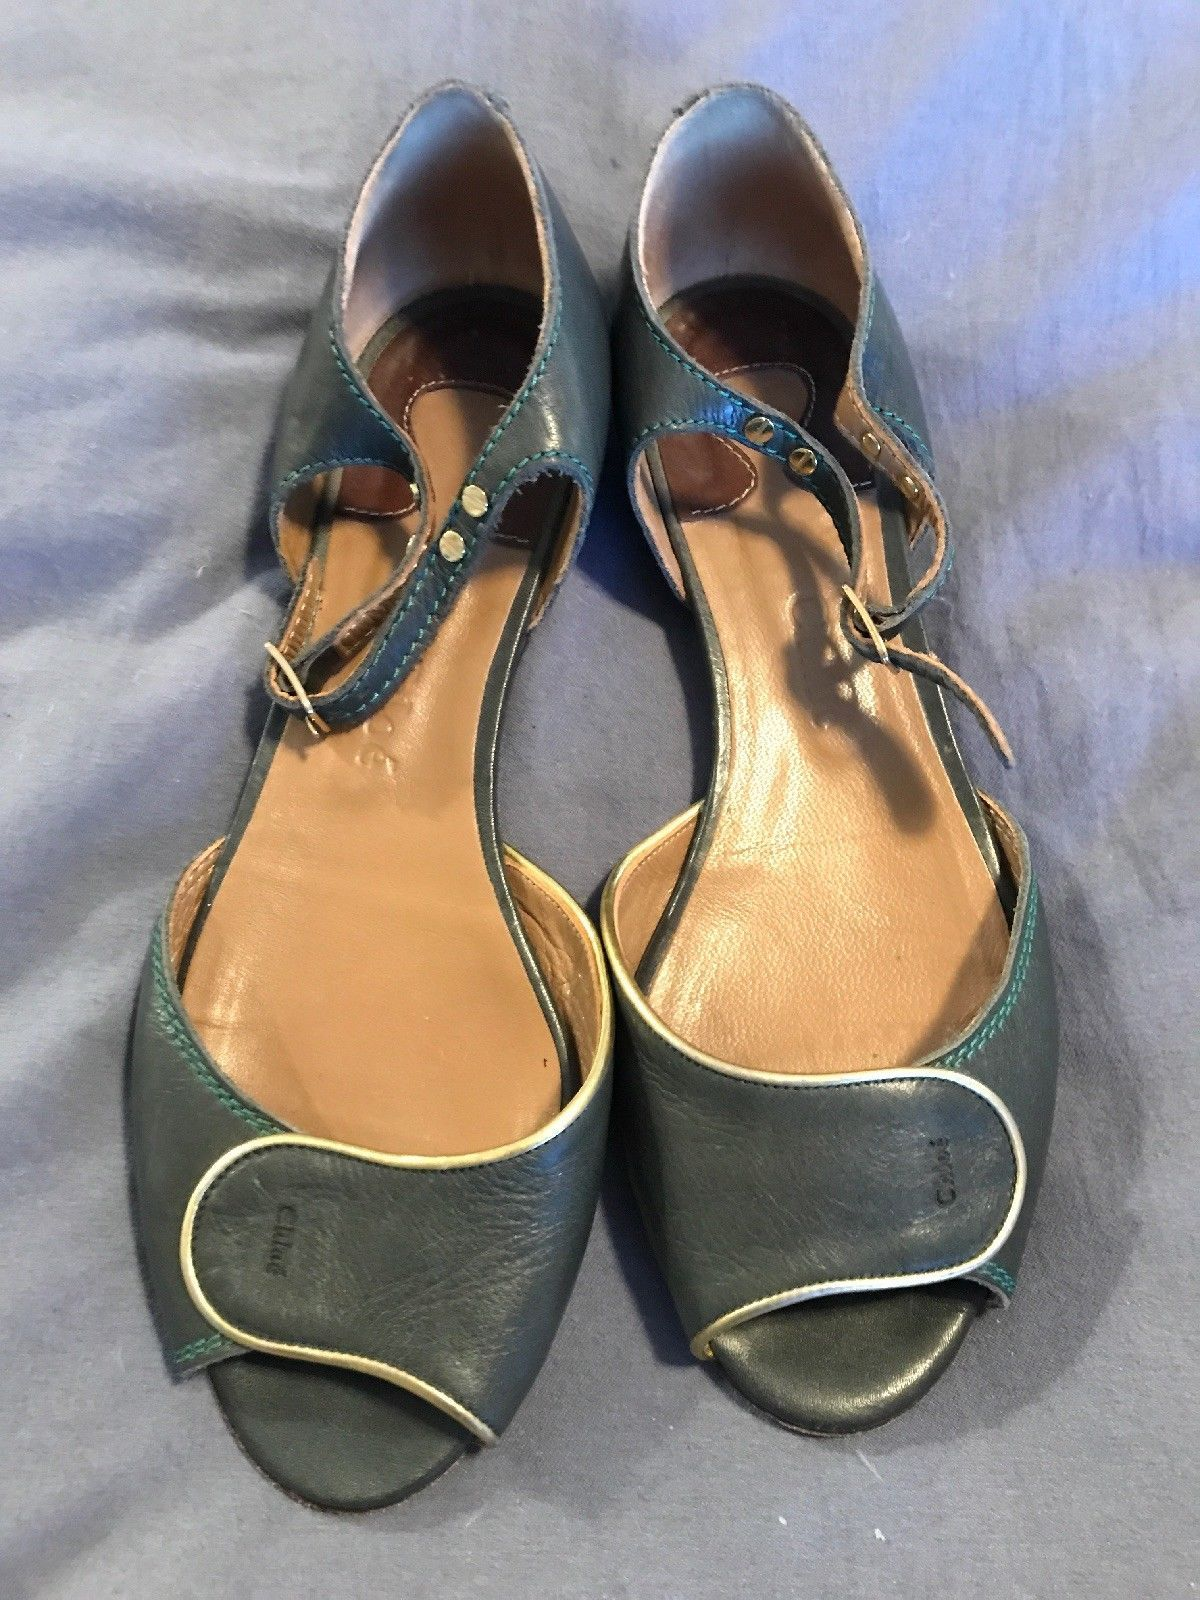 63b0783e26176 Very Vintage Chloe 38 Green with Gold lame trim Sandals flats ankle strap  shoes